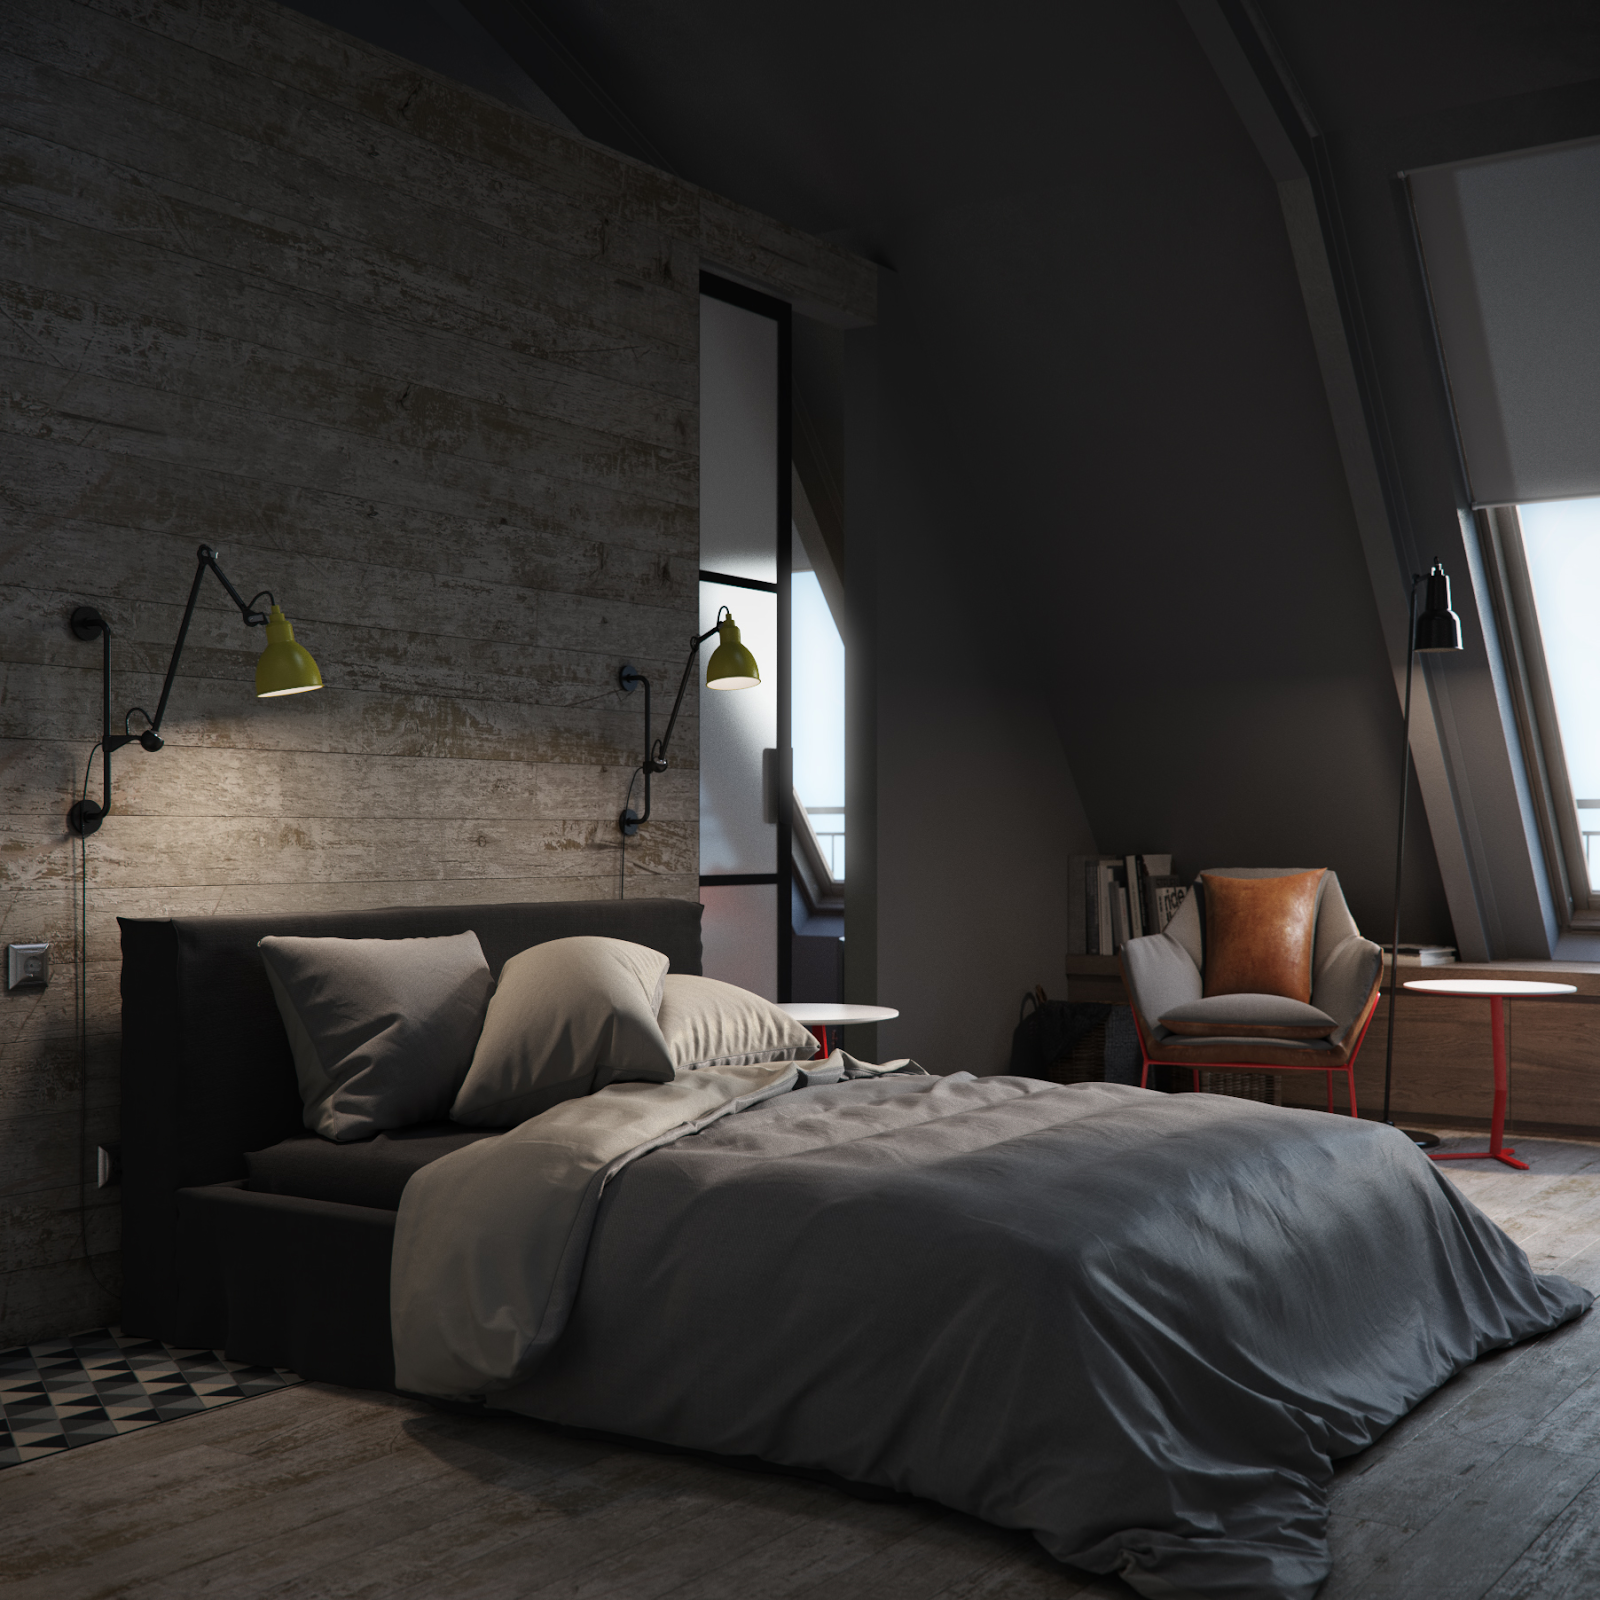 Apartment Bedrooms